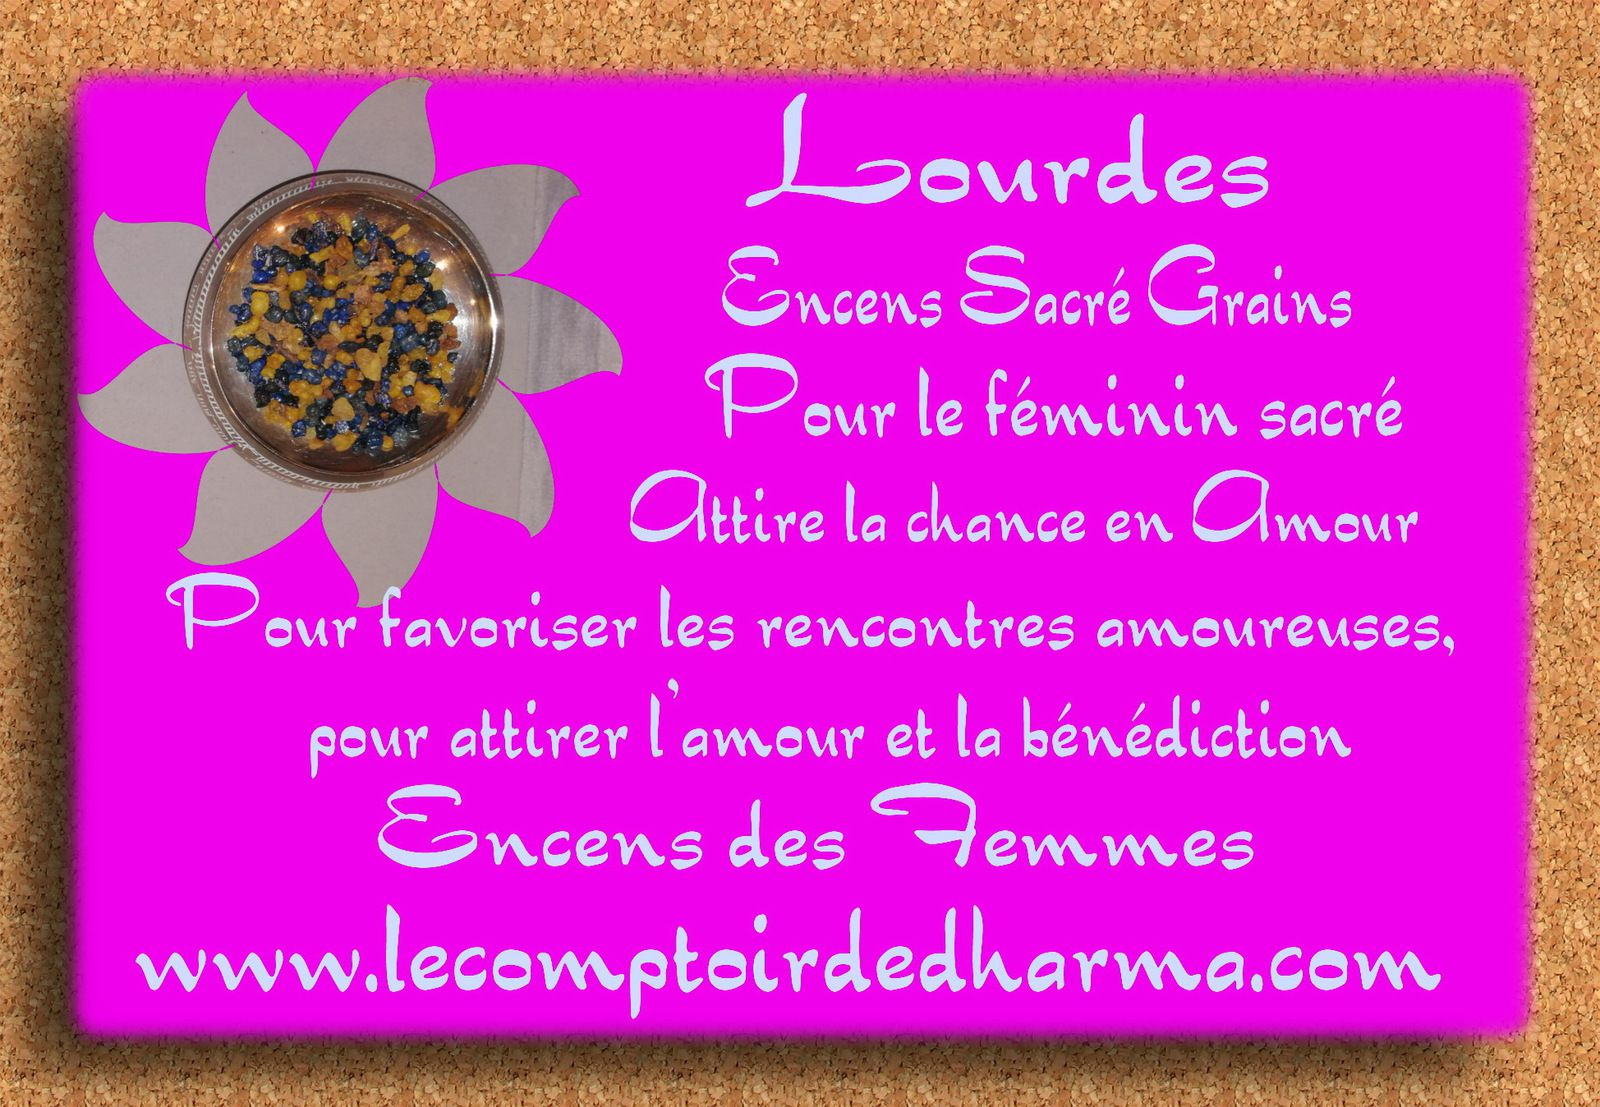 Lourdes grains sacrés